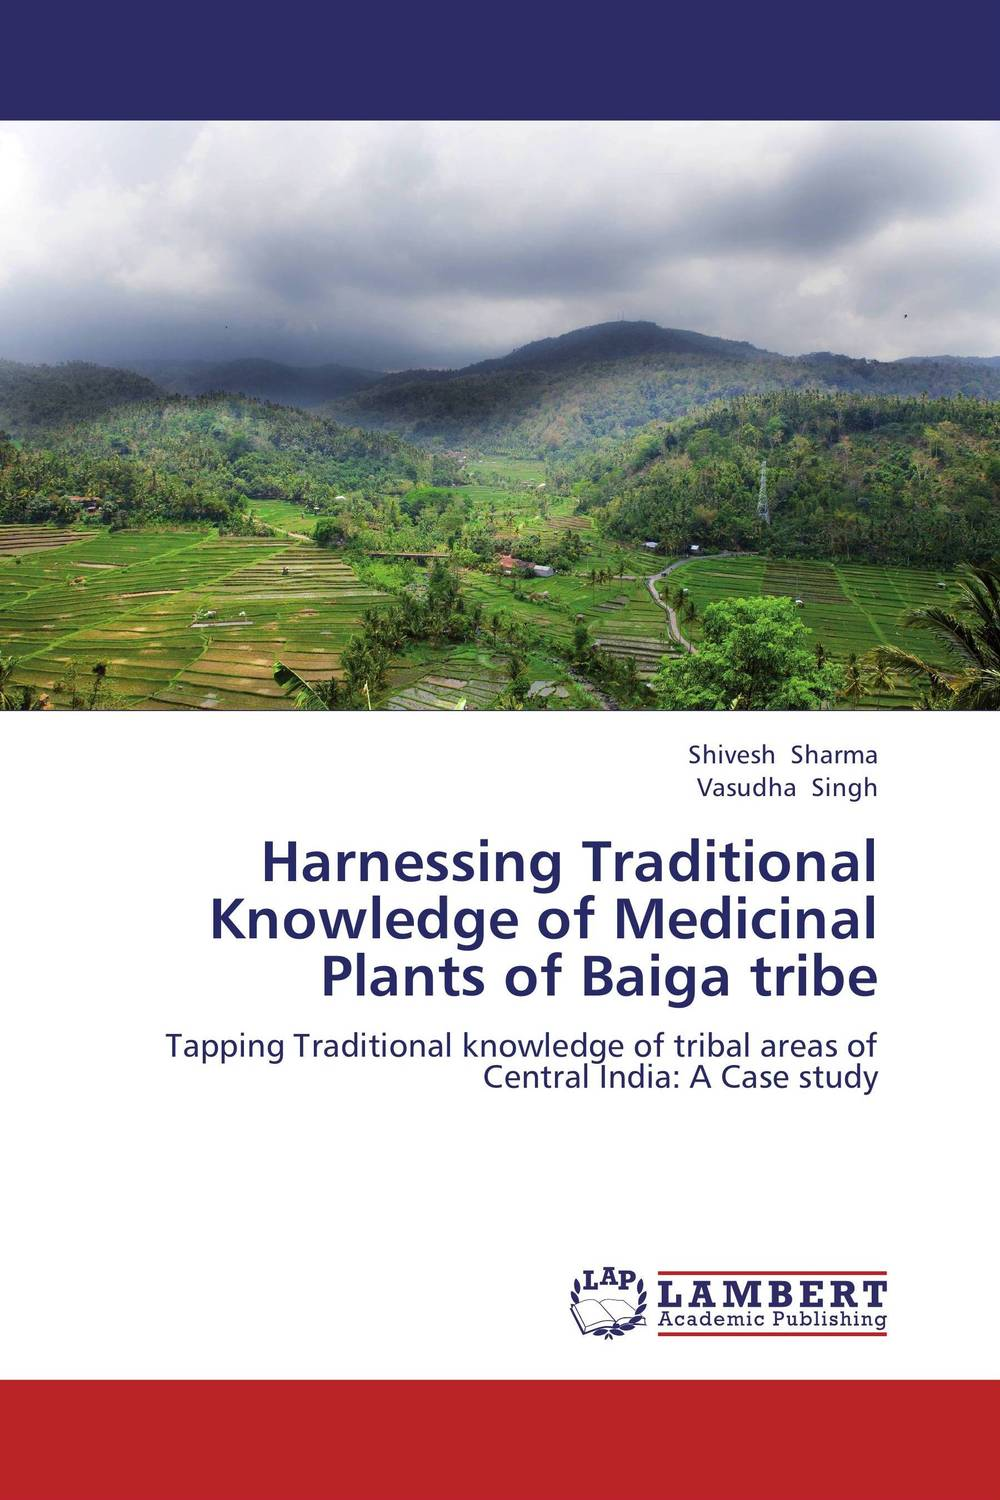 Harnessing Traditional Knowledge of Medicinal Plants of Baiga tribe reena garbyal alka goel and isha tyagi traditional costumes of rung tribe bhotiya in uttarakhand india